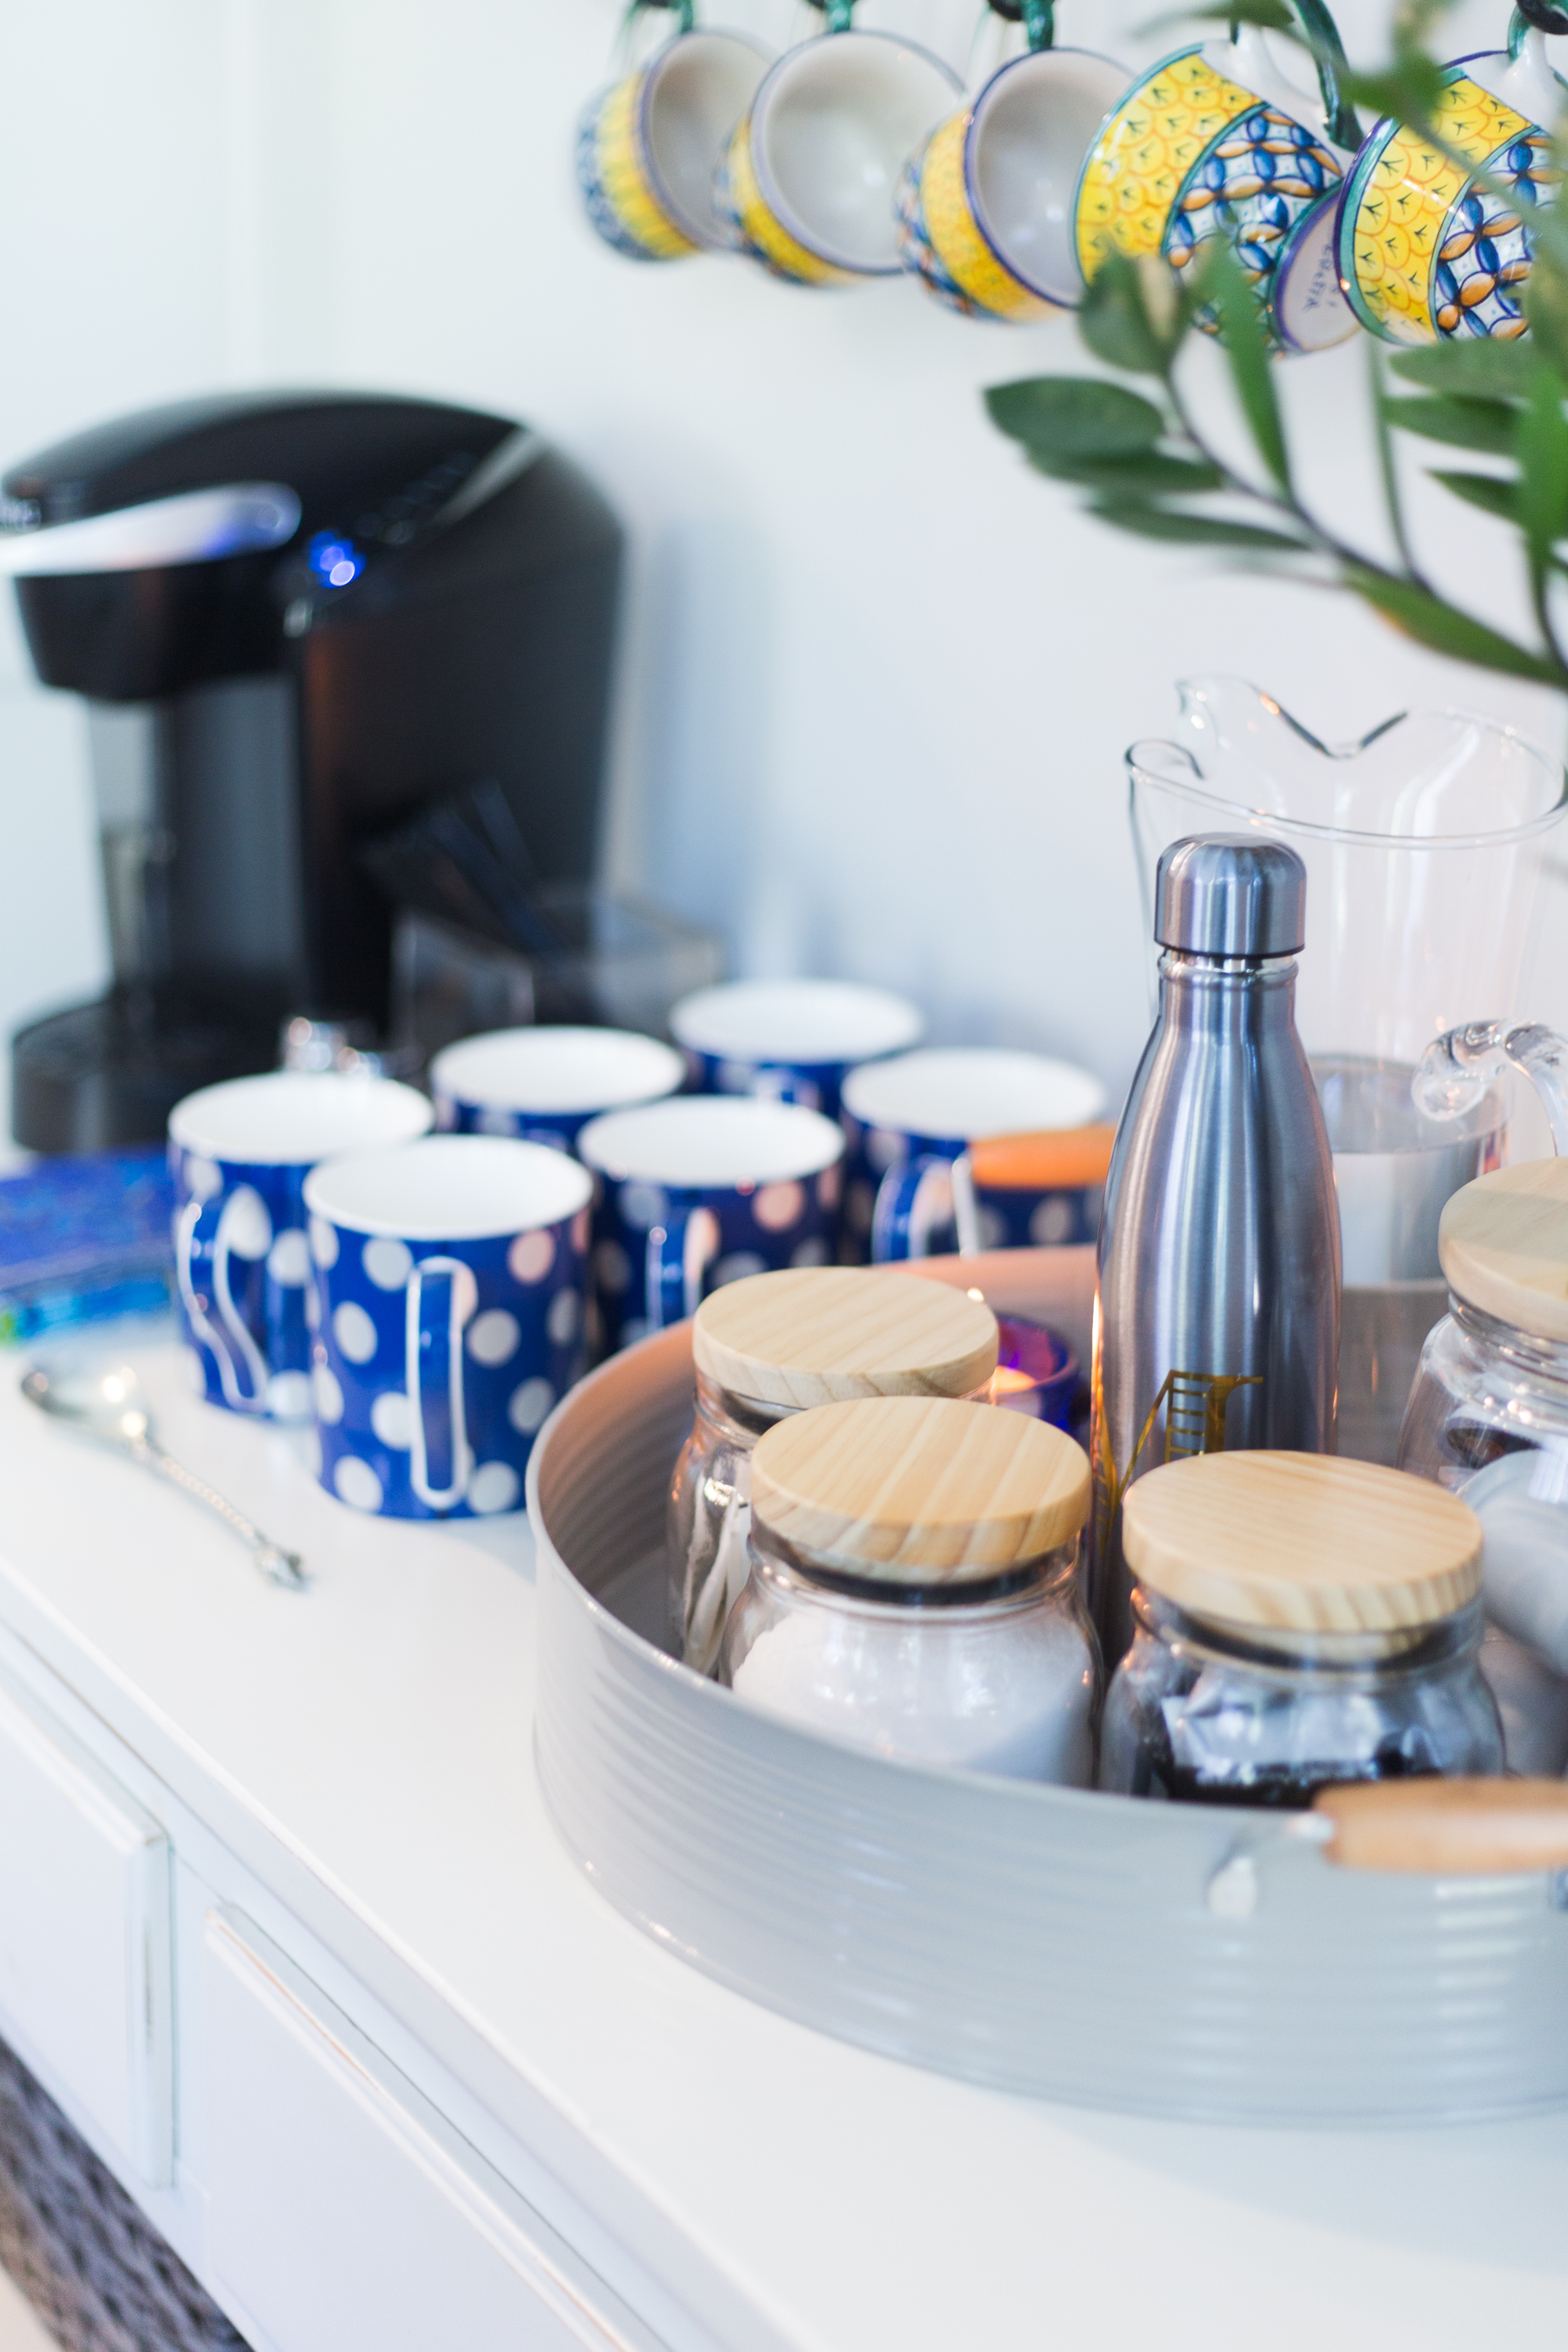 Coffee bar station with blue mugs, tray, coffee bar set up #coffeebar #coffeetray #breakfastroom #coffeestation